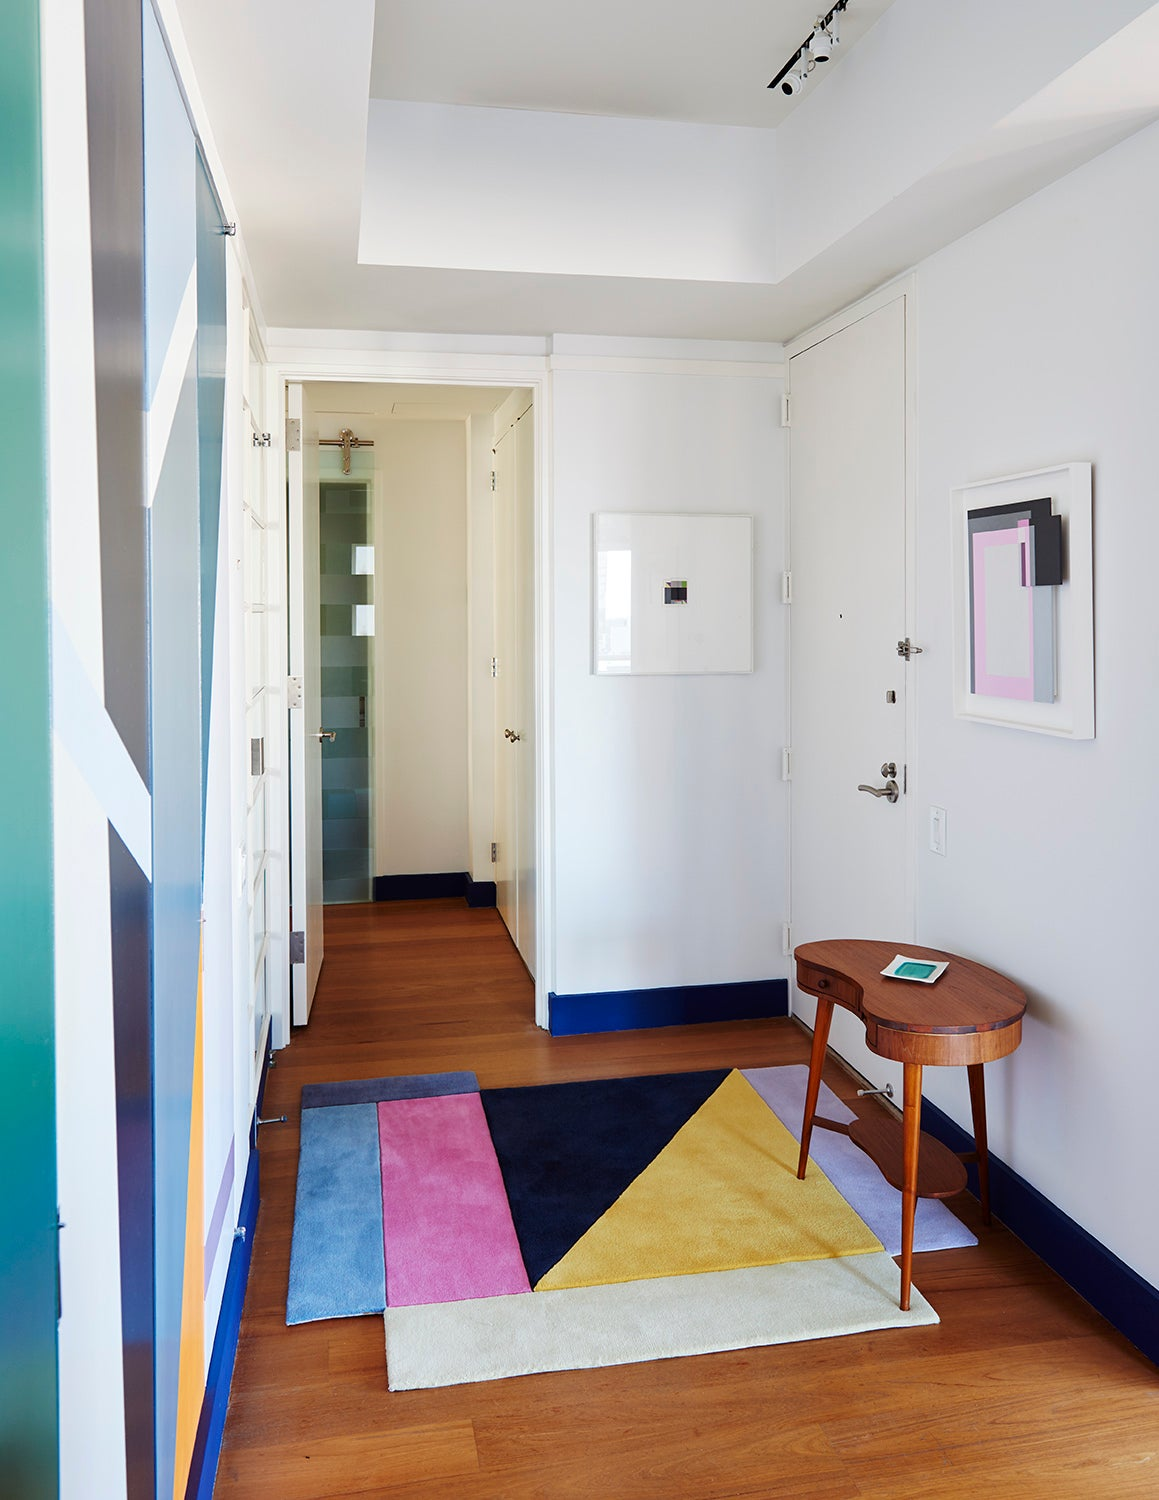 The Apartment Entrance With The Rug Square Within A